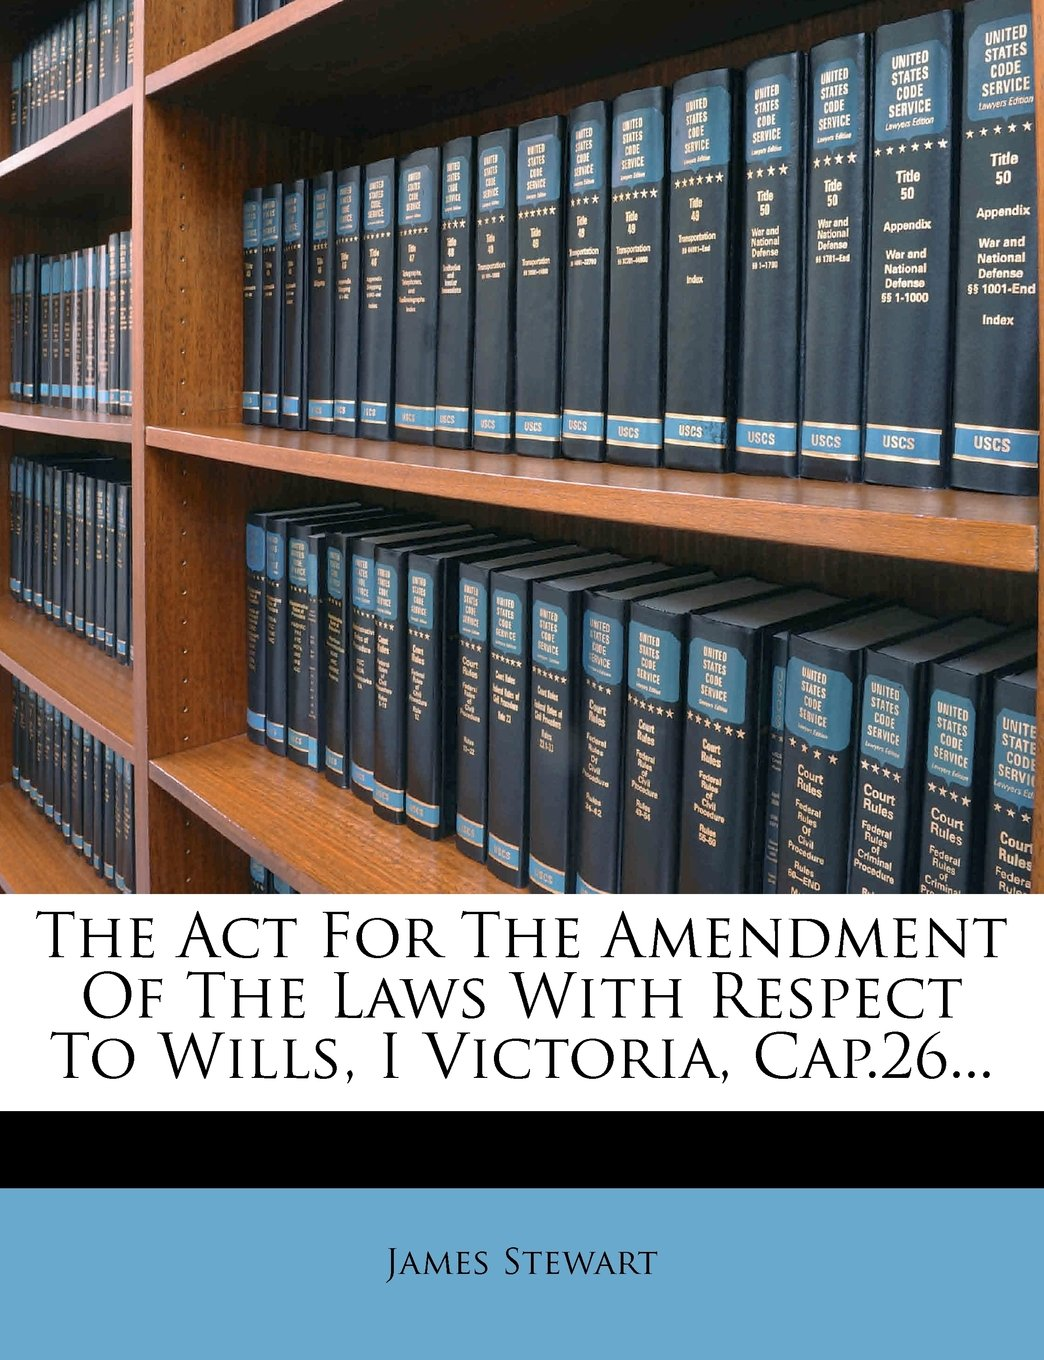 Read Online The Act For The Amendment Of The Laws With Respect To Wills, I Victoria, Cap.26... PDF